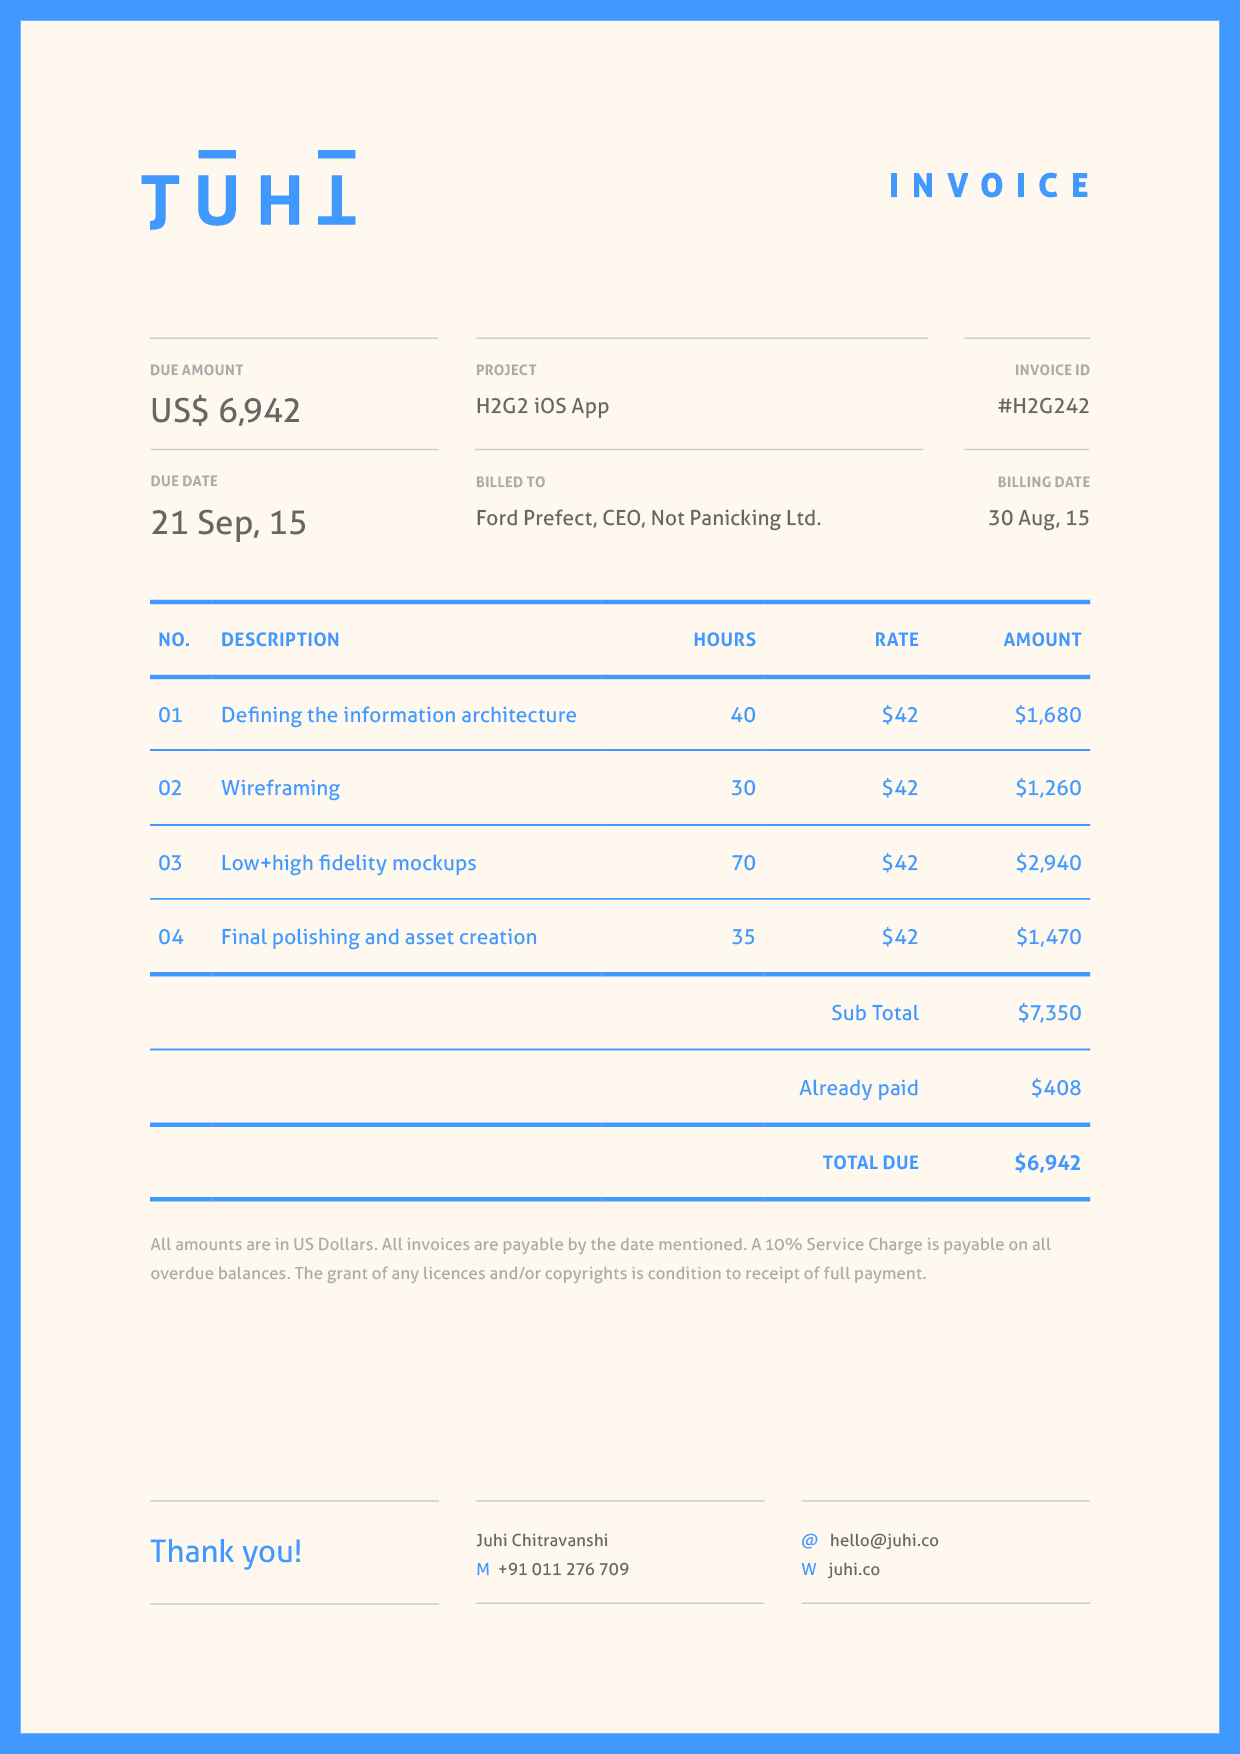 Usdgus  Pleasant Dont Hold Back On Your Invoice  Inspiring Designs  With Fascinating Invoice By Juhi Chitravanshi Follow With Easy On The Eye Making An Invoice Also How To Create Invoice In Addition Toll By Plate Invoice Payment And What Is Invoice Number As Well As Free Invoice Template Download Additionally Purchase Order Vs Invoice From Inspirationfeedcom With Usdgus  Fascinating Dont Hold Back On Your Invoice  Inspiring Designs  With Easy On The Eye Invoice By Juhi Chitravanshi Follow And Pleasant Making An Invoice Also How To Create Invoice In Addition Toll By Plate Invoice Payment From Inspirationfeedcom